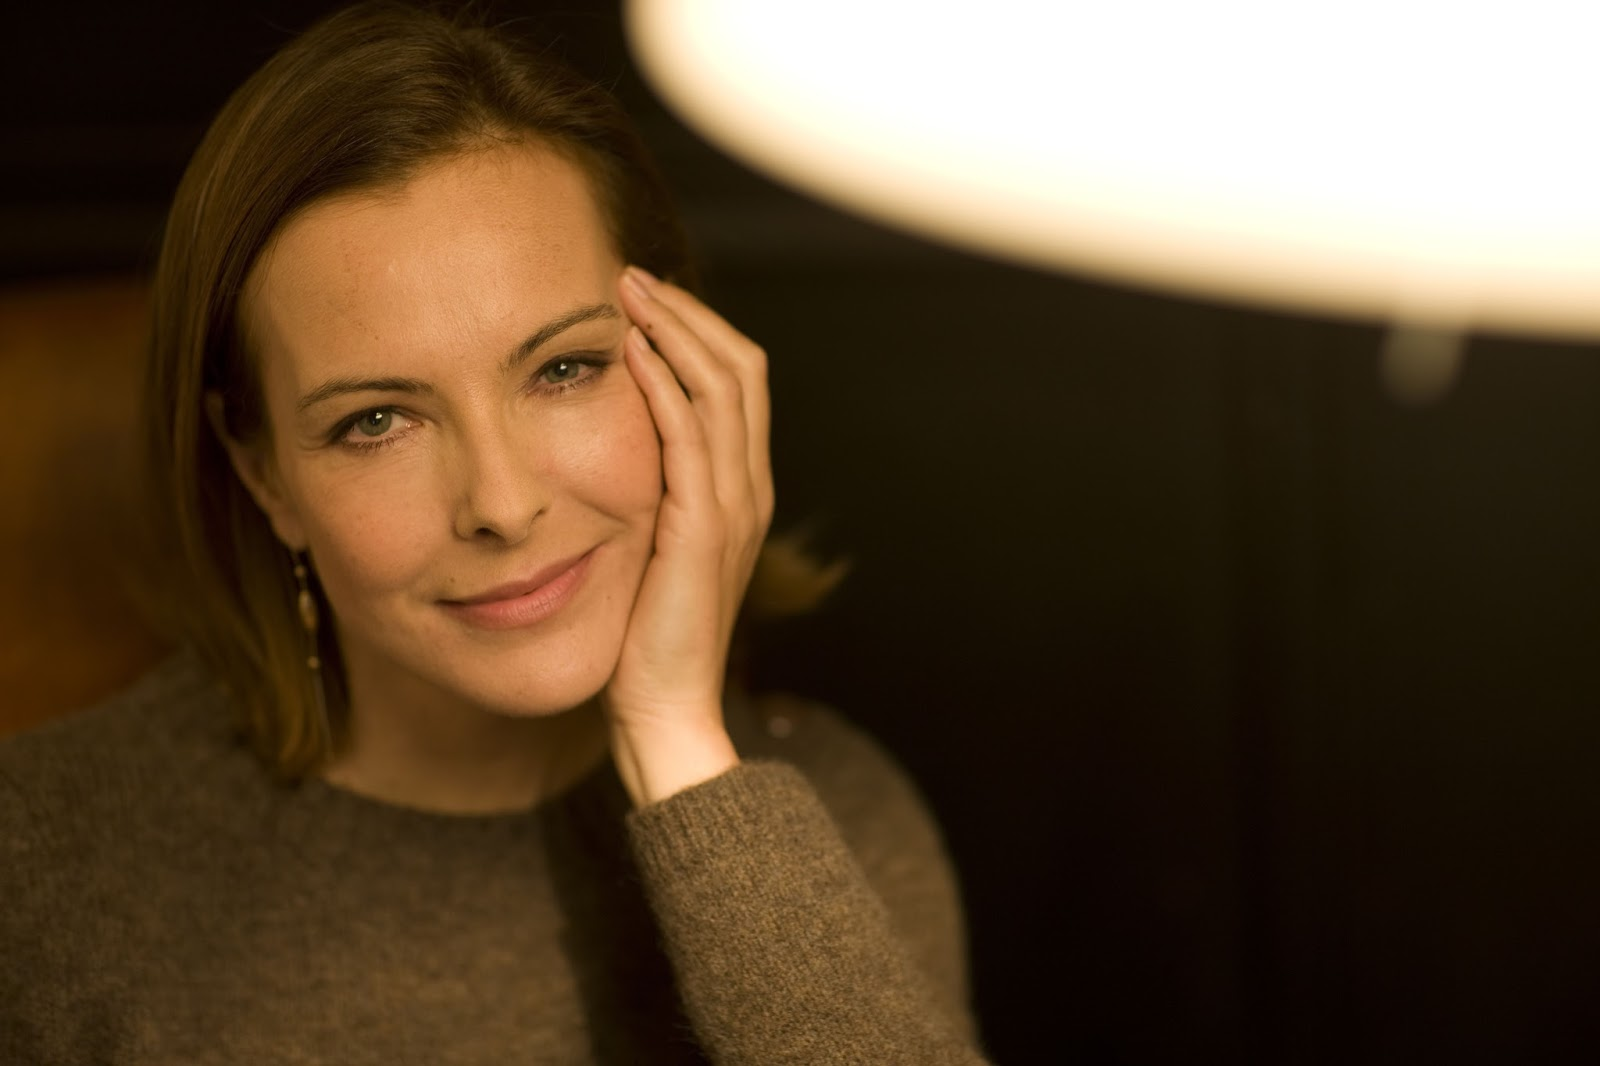 Carole Bouquet HQ wallpapers